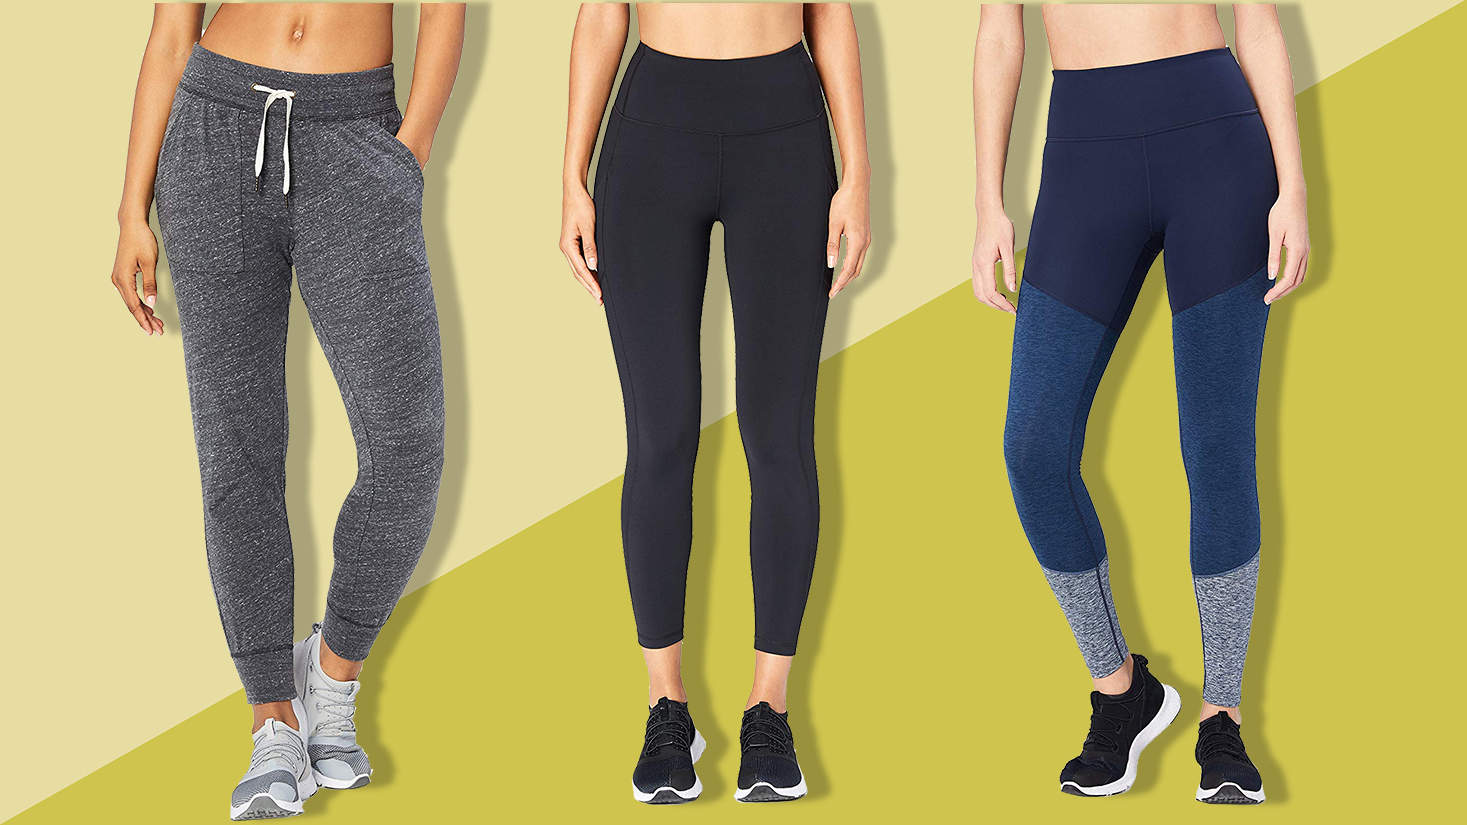 cdb527220de34 The Best Workout Clothes To Buy on Amazon Prime Day - Health